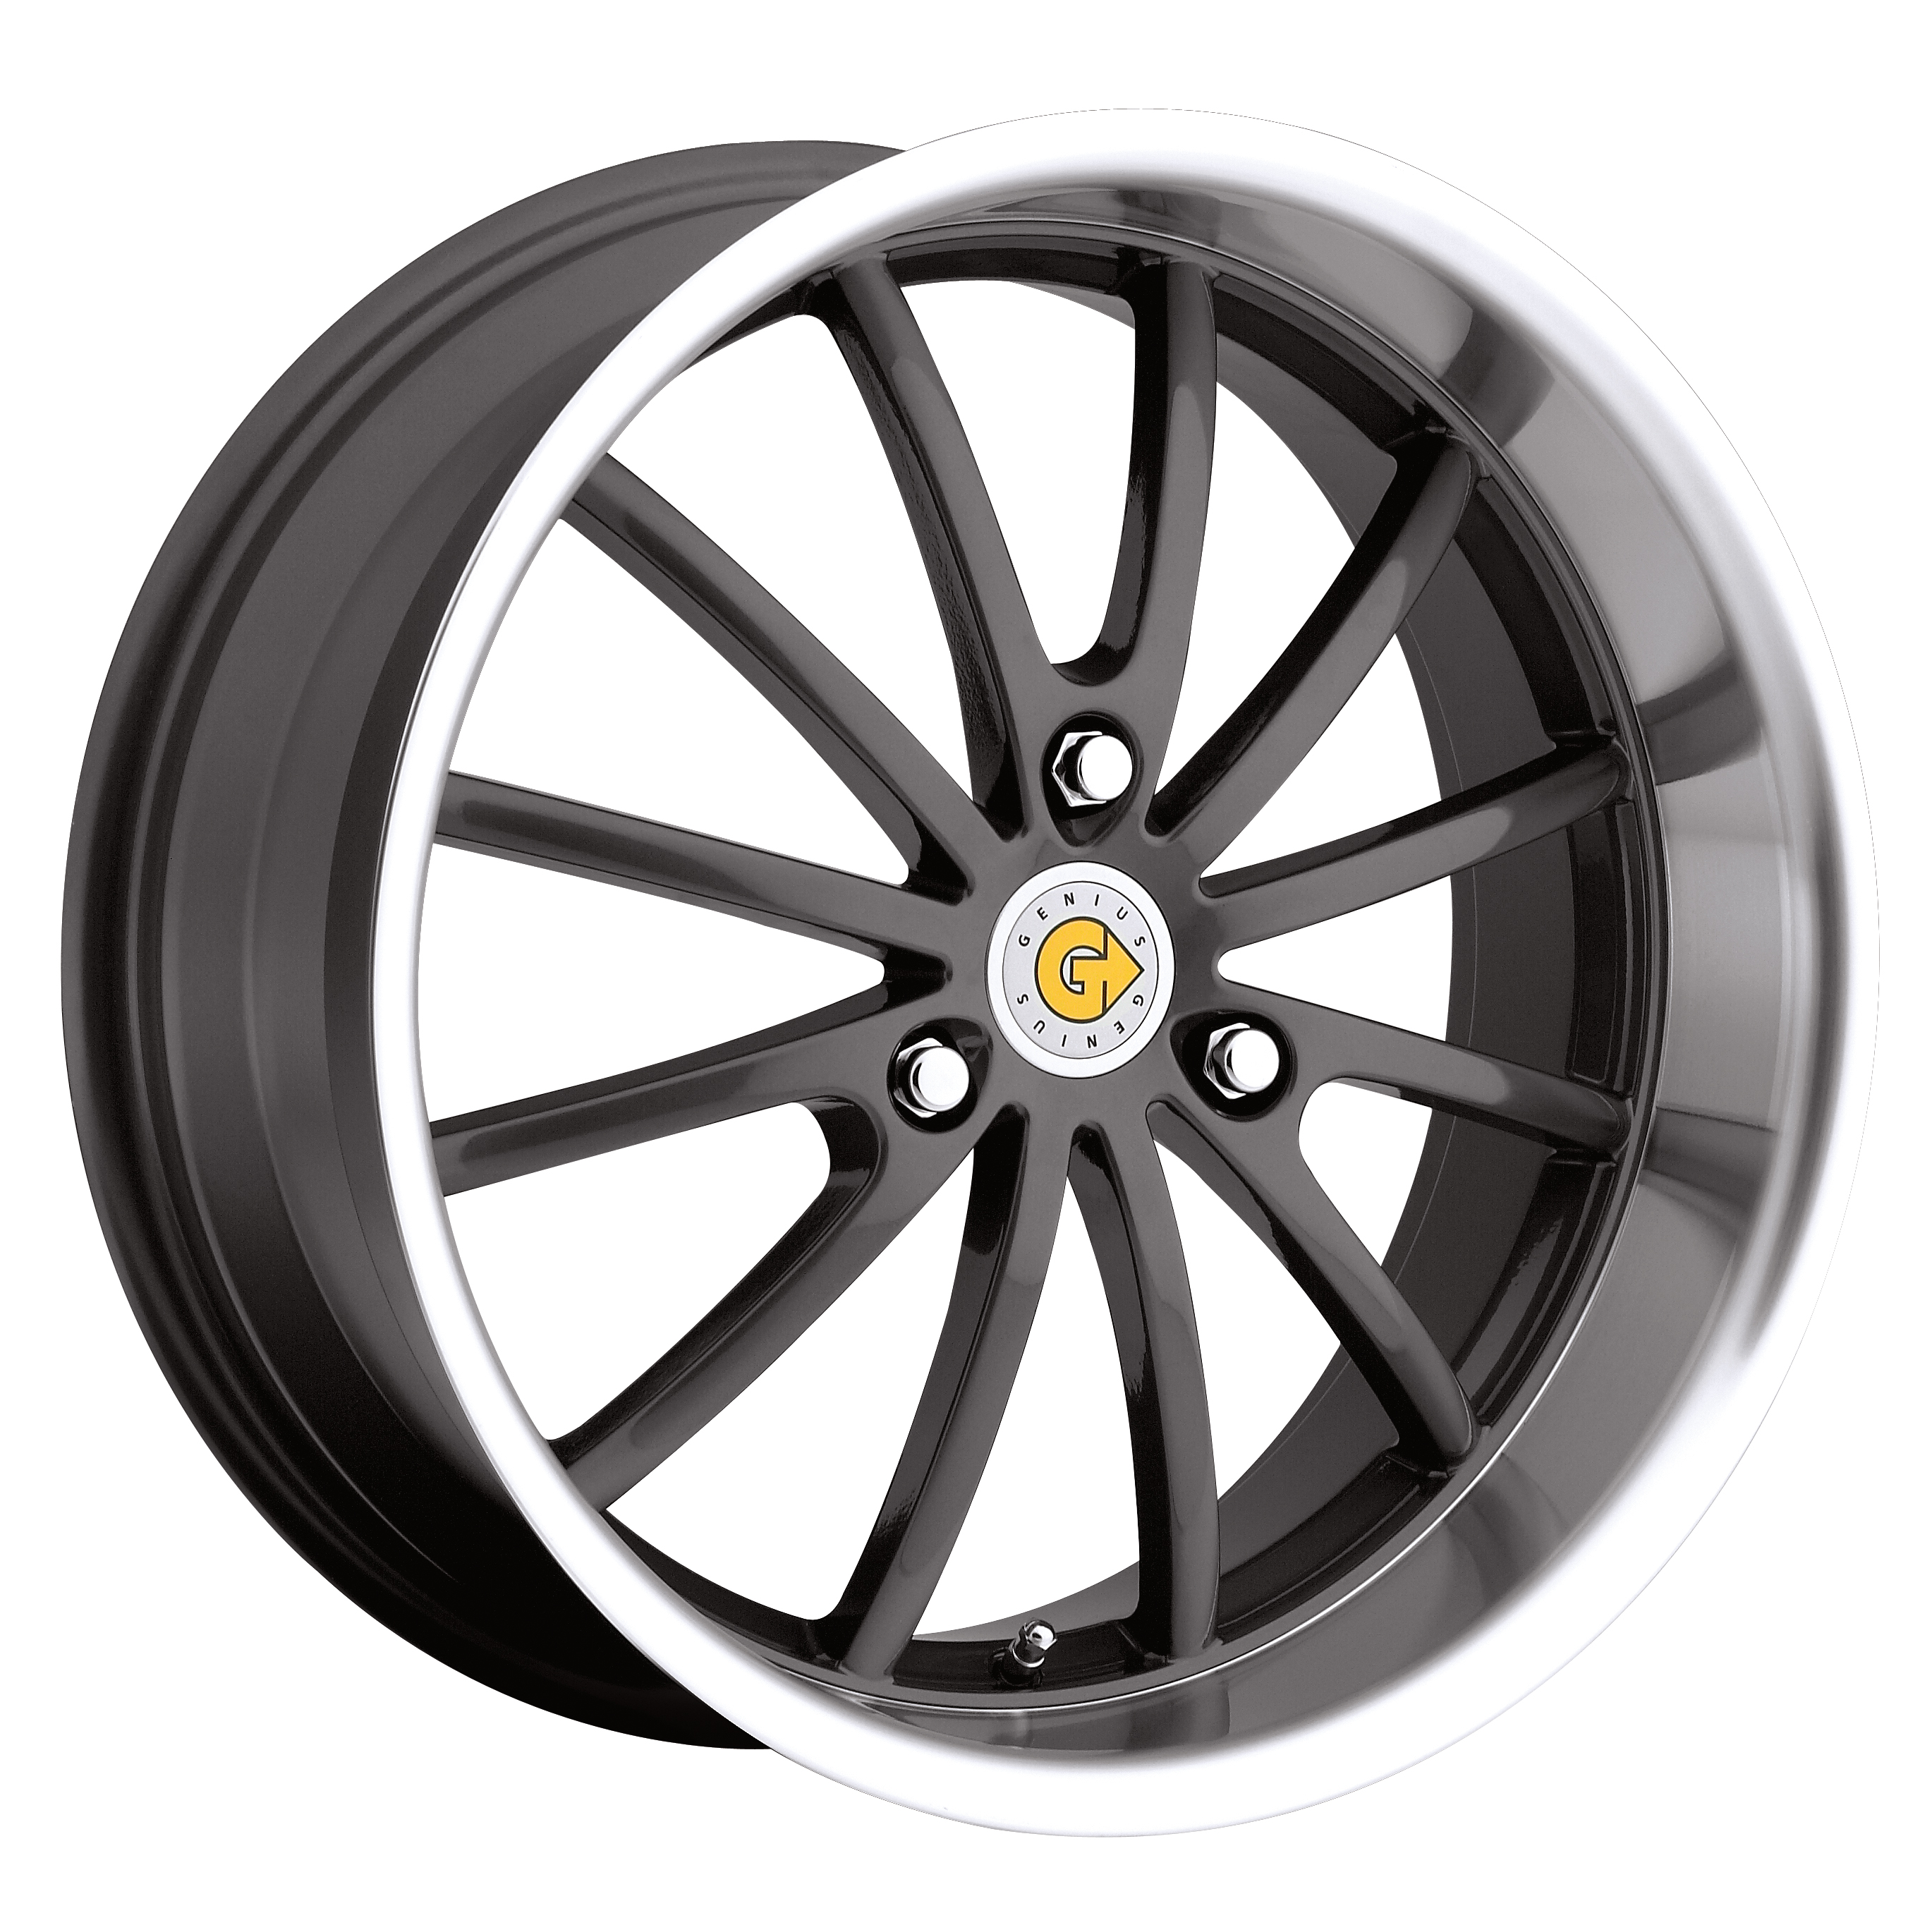 Genius Wheels Adds New Dimensions For Customizing Smart